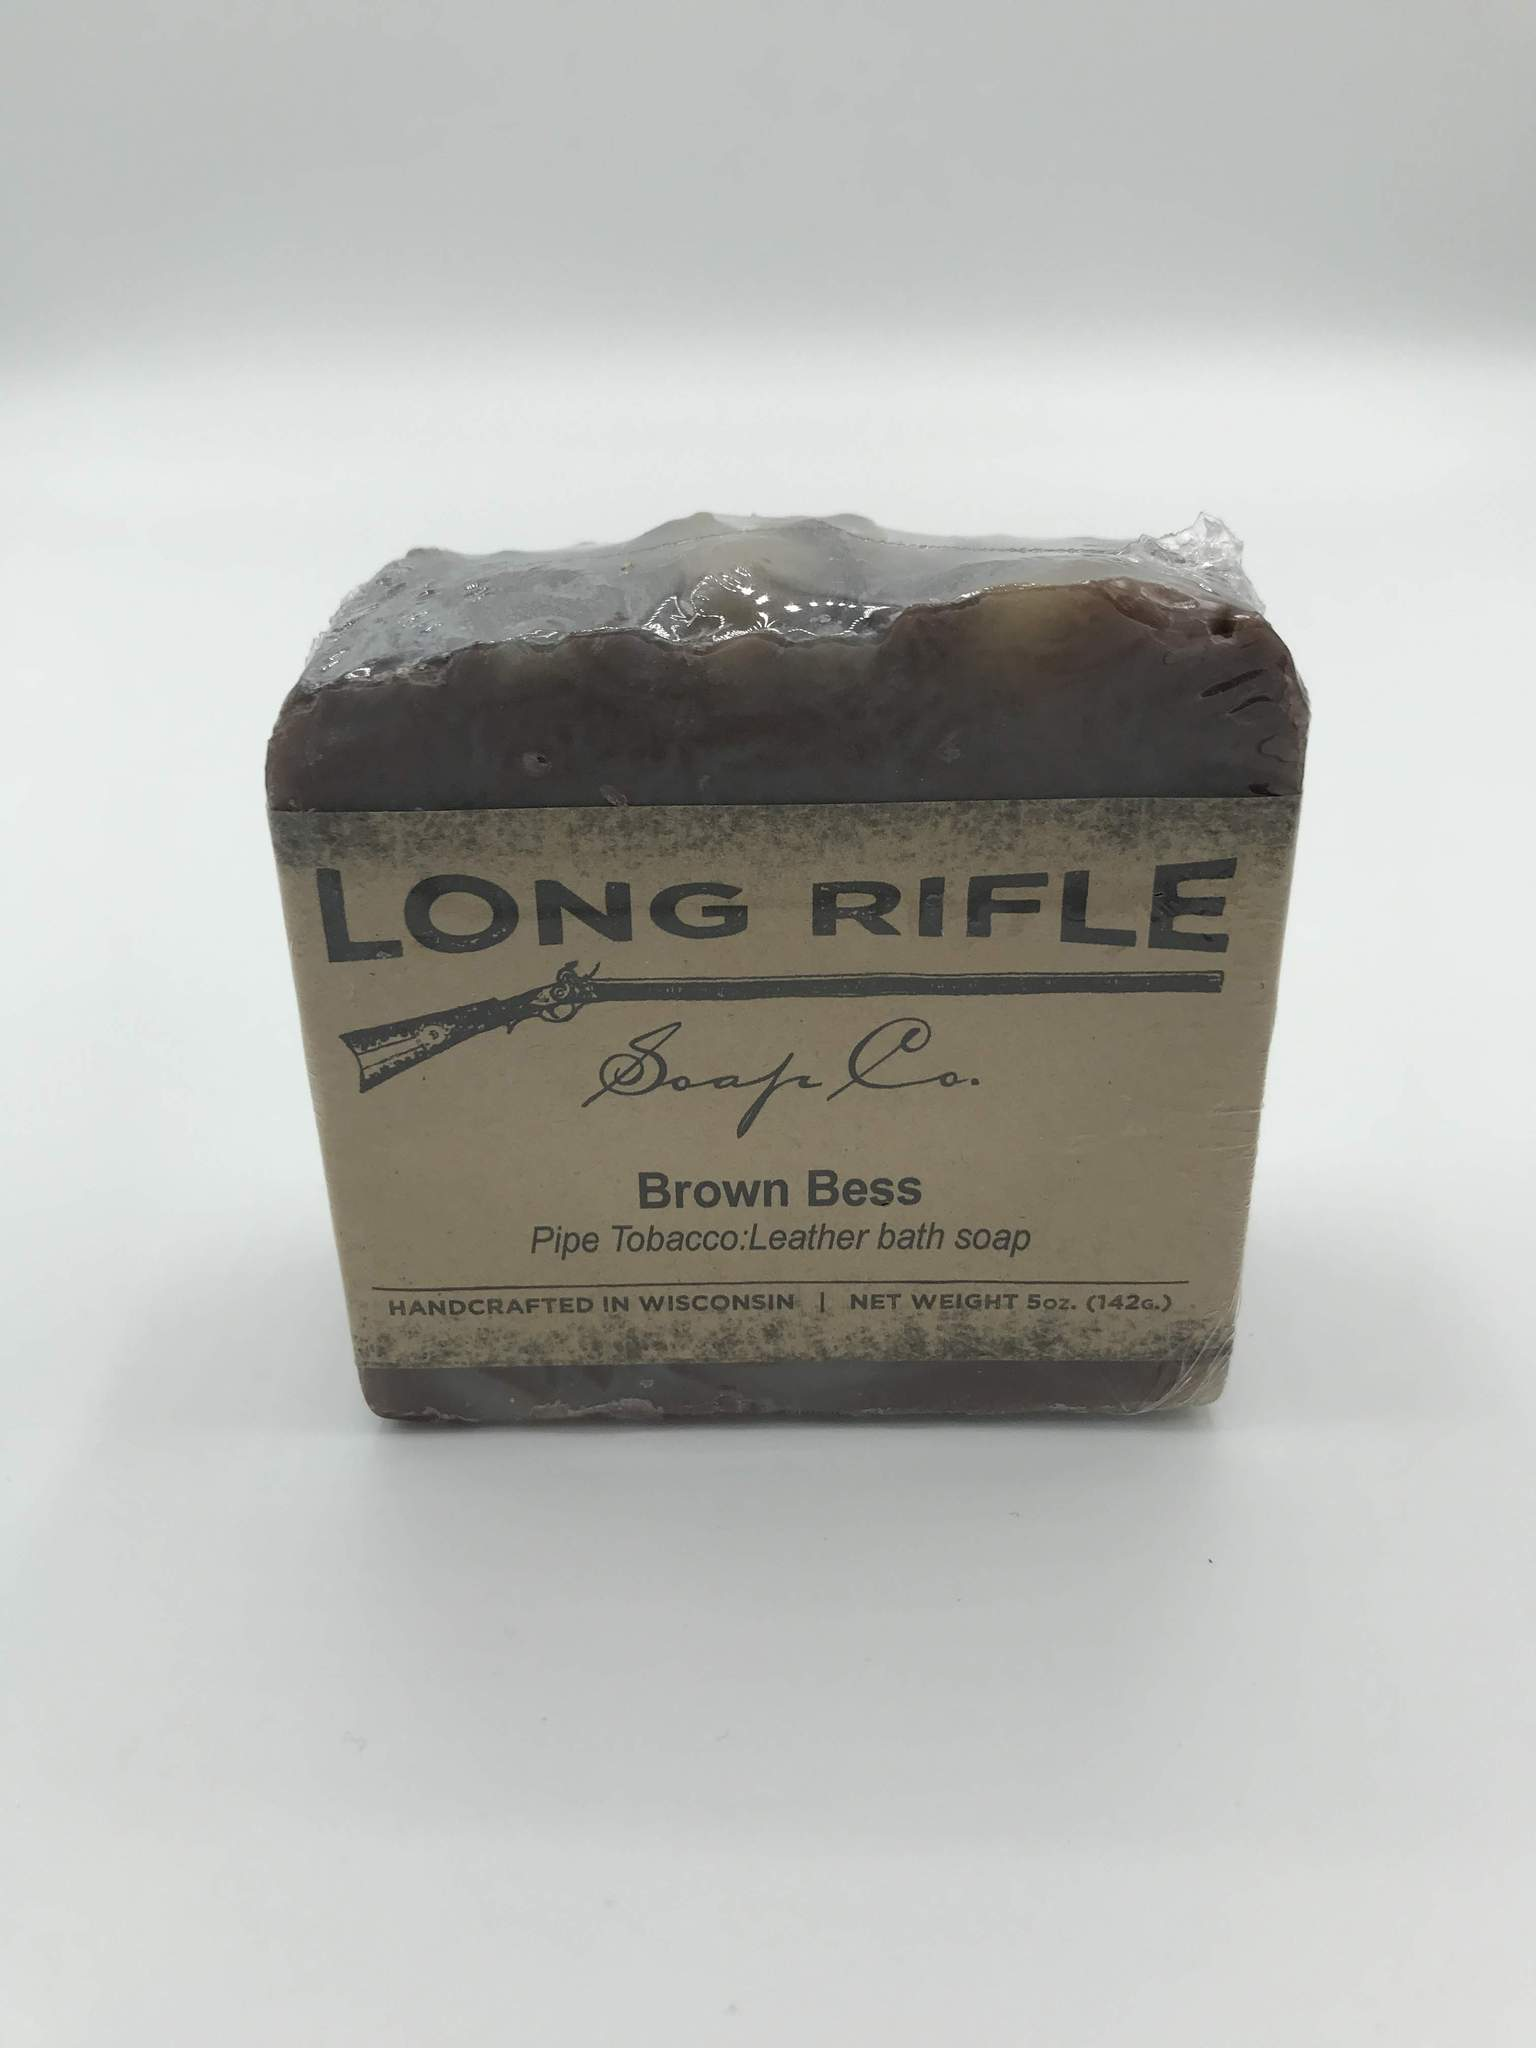 Long Rifle Bar Soap 5oz - Brown Bess